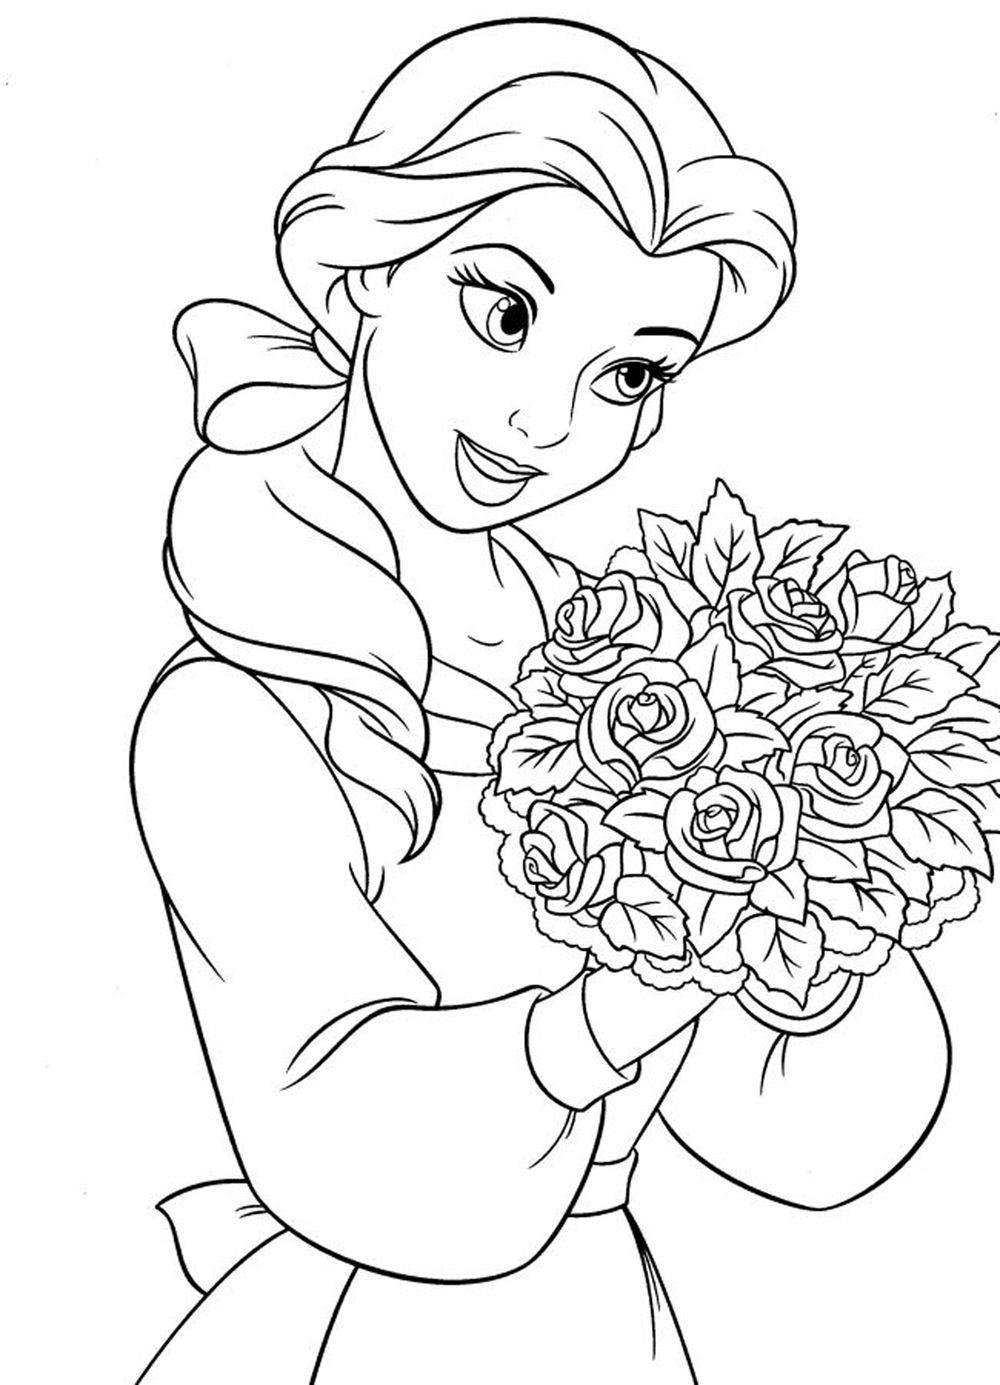 Princess Coloring Pages For Girls Disney Coloring Sheets